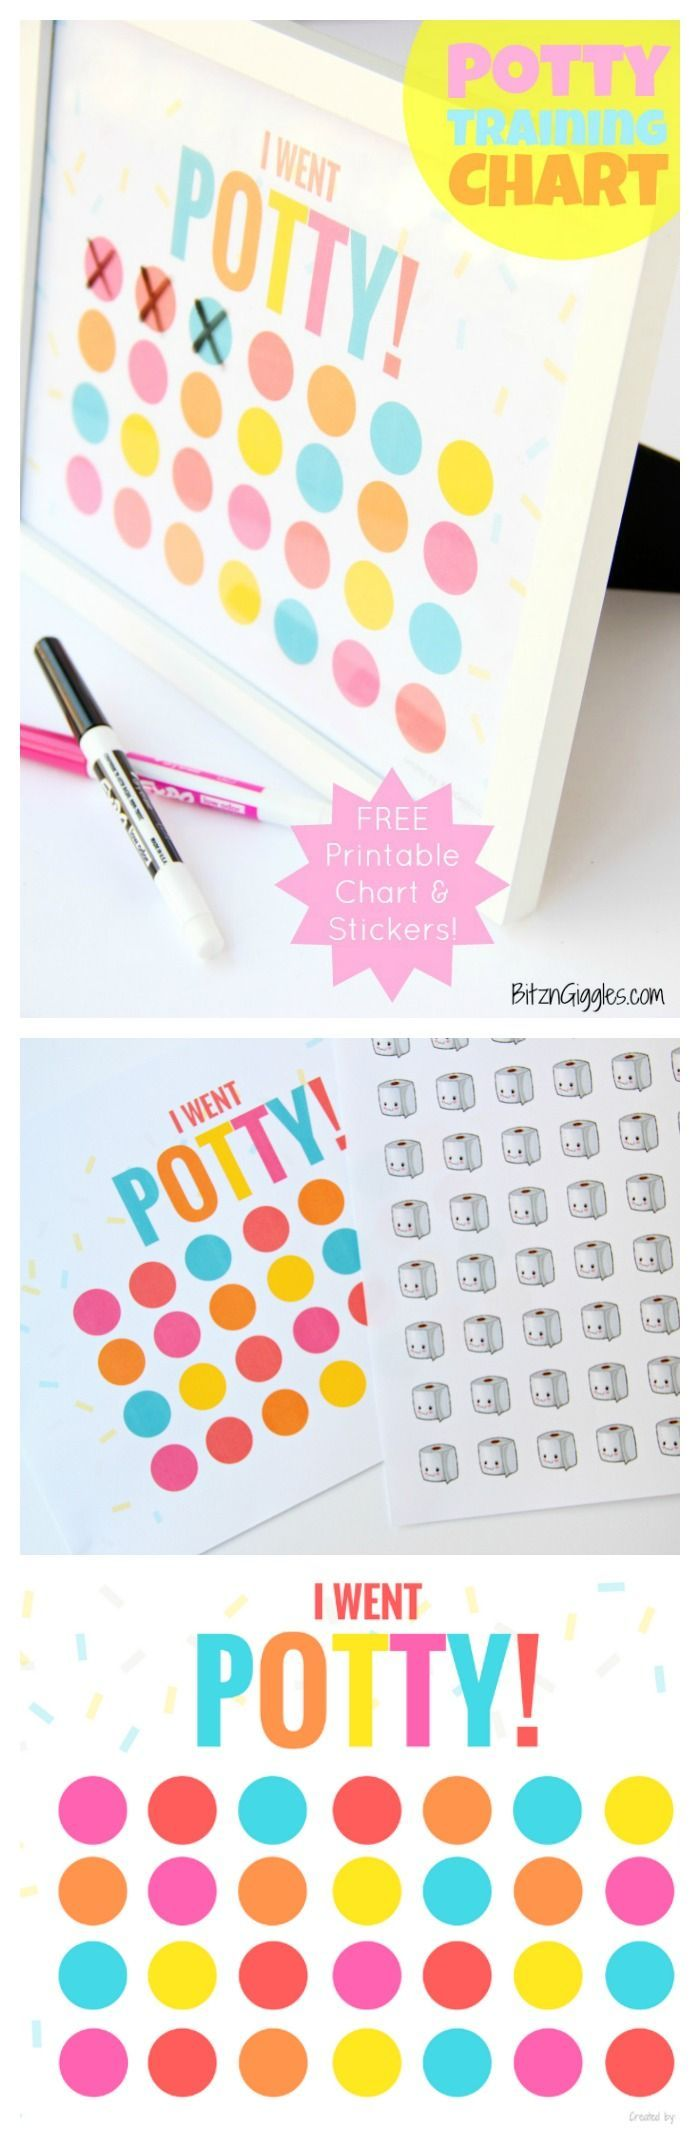 Printable Potty Training Chart - FREE, printable potty training chart! Use stickers, or frame and use a dry erase marker to mark off success. Child earns a reward when the chart is filled!